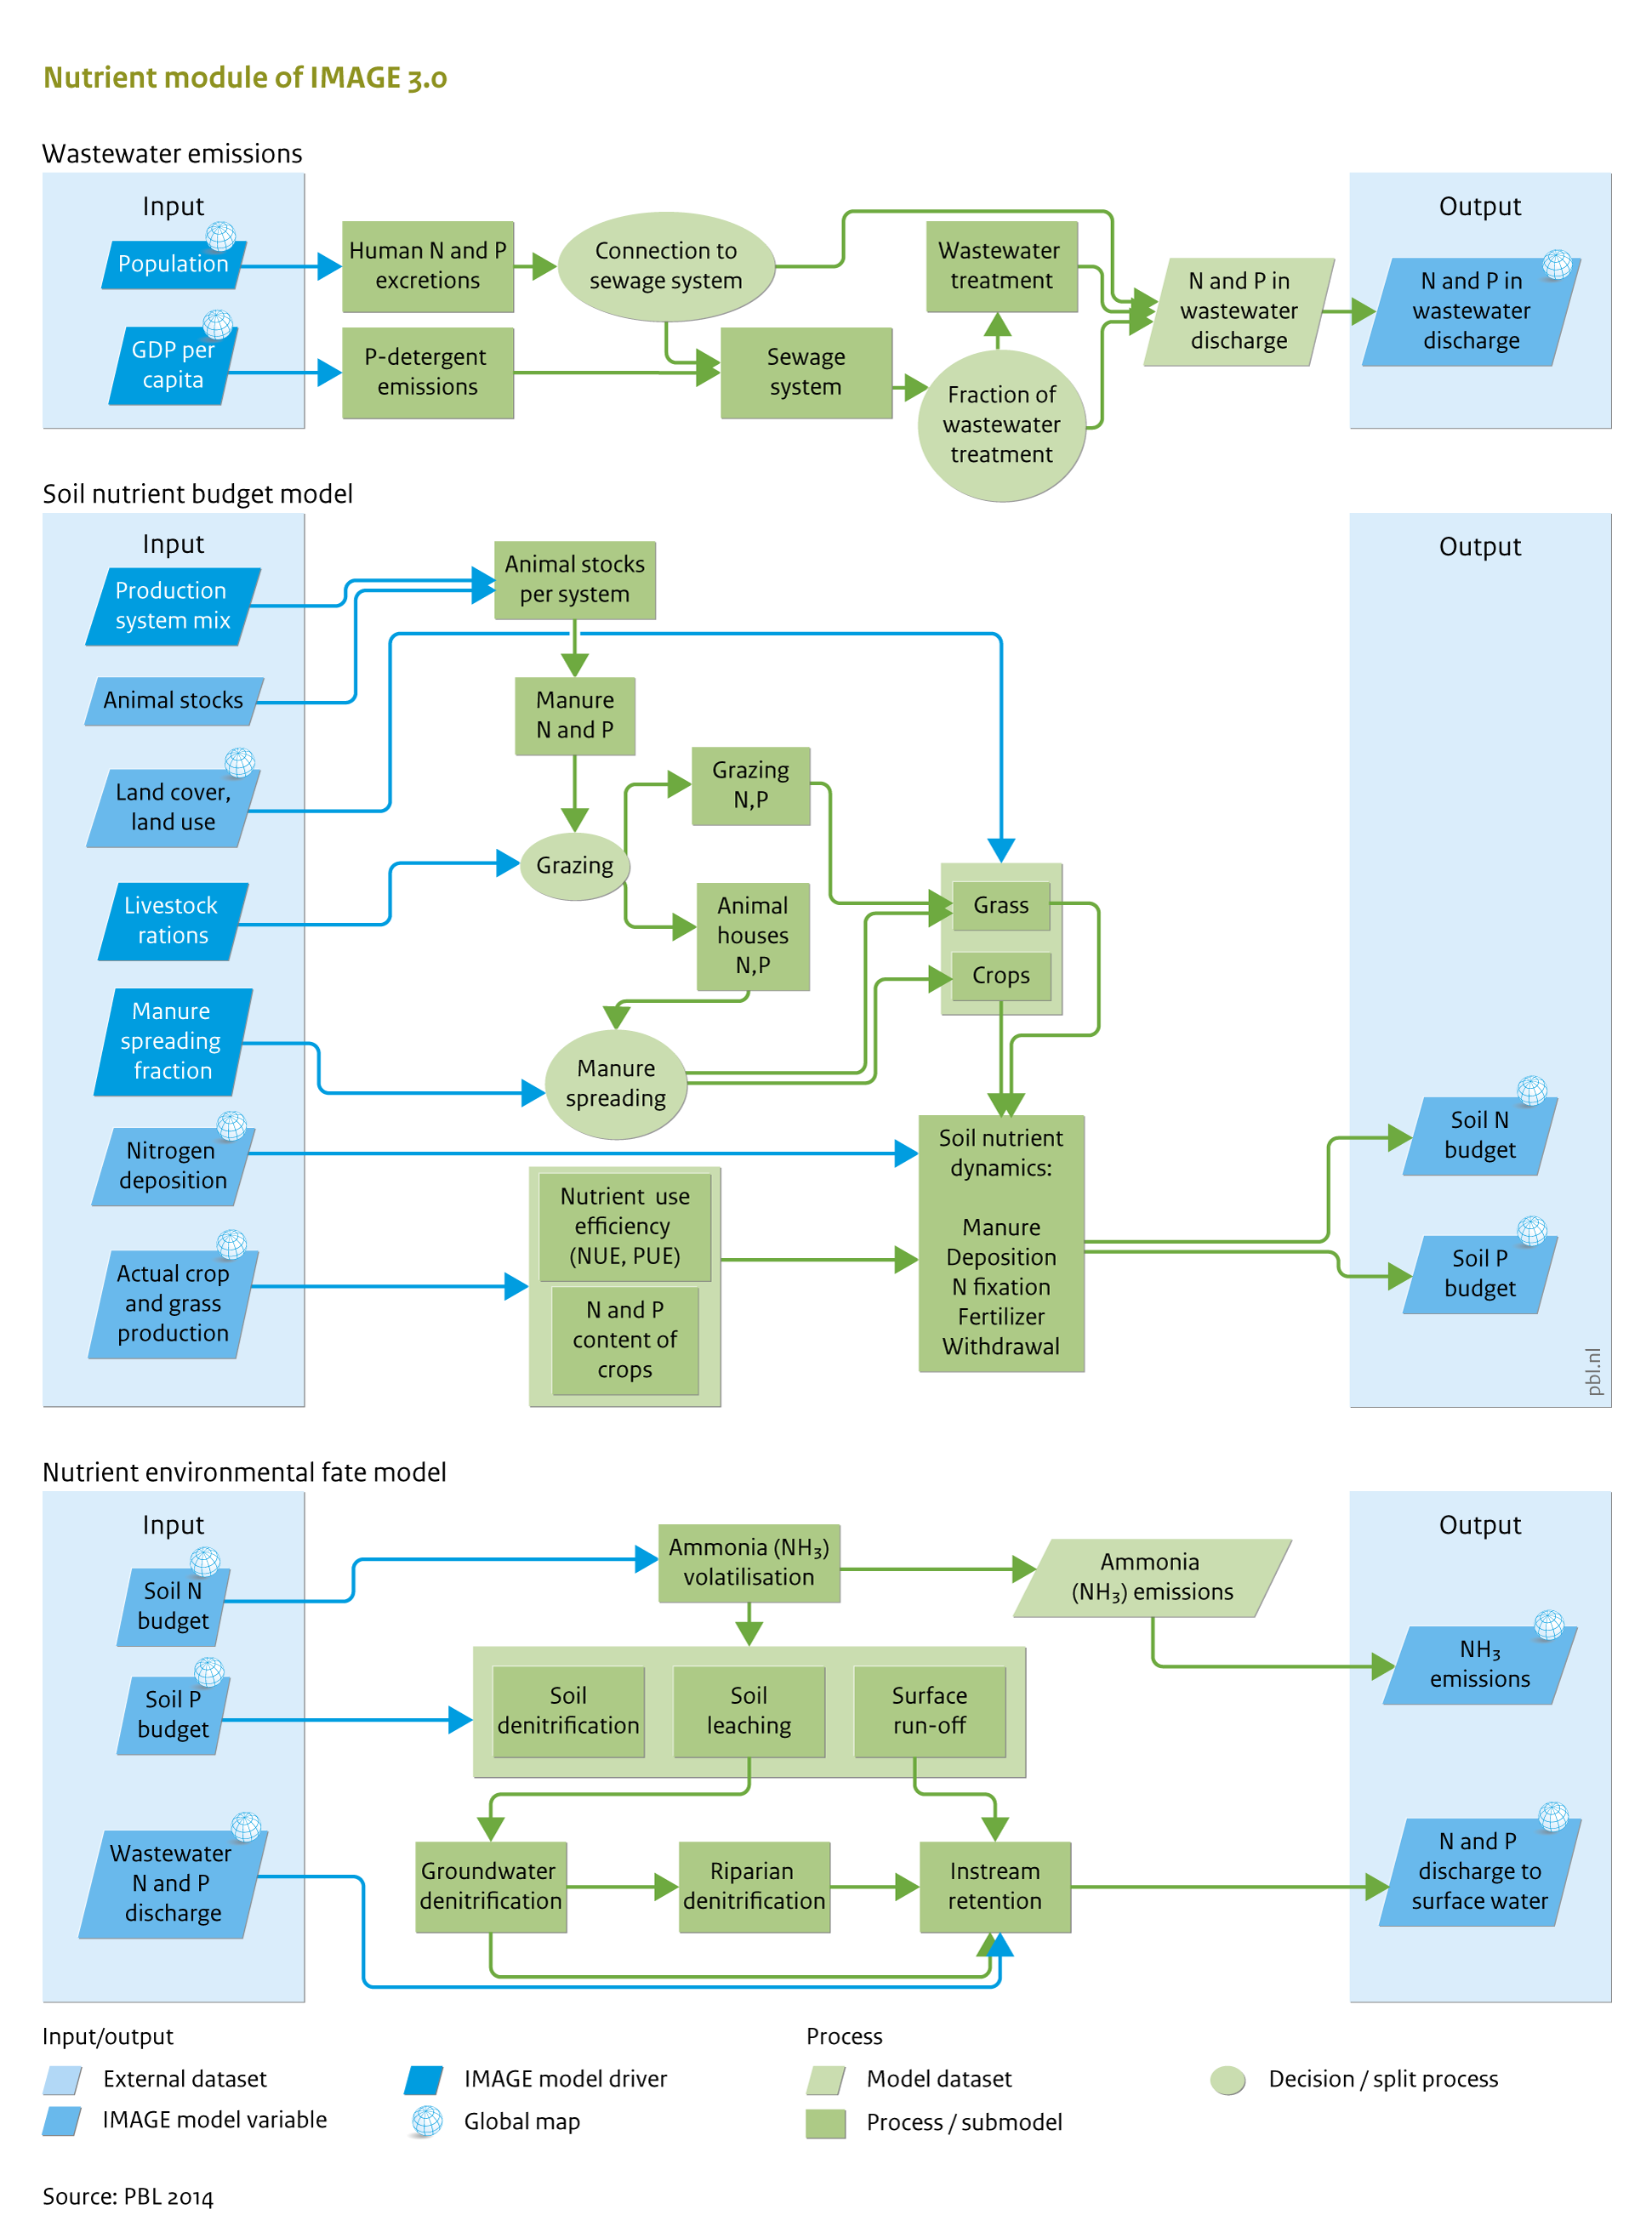 airways flowchart 55 flow chart this project on airline management system is the automation of registration all the information about the business functioning of the airways department is collected, how the data and information is flow from one end to another end.